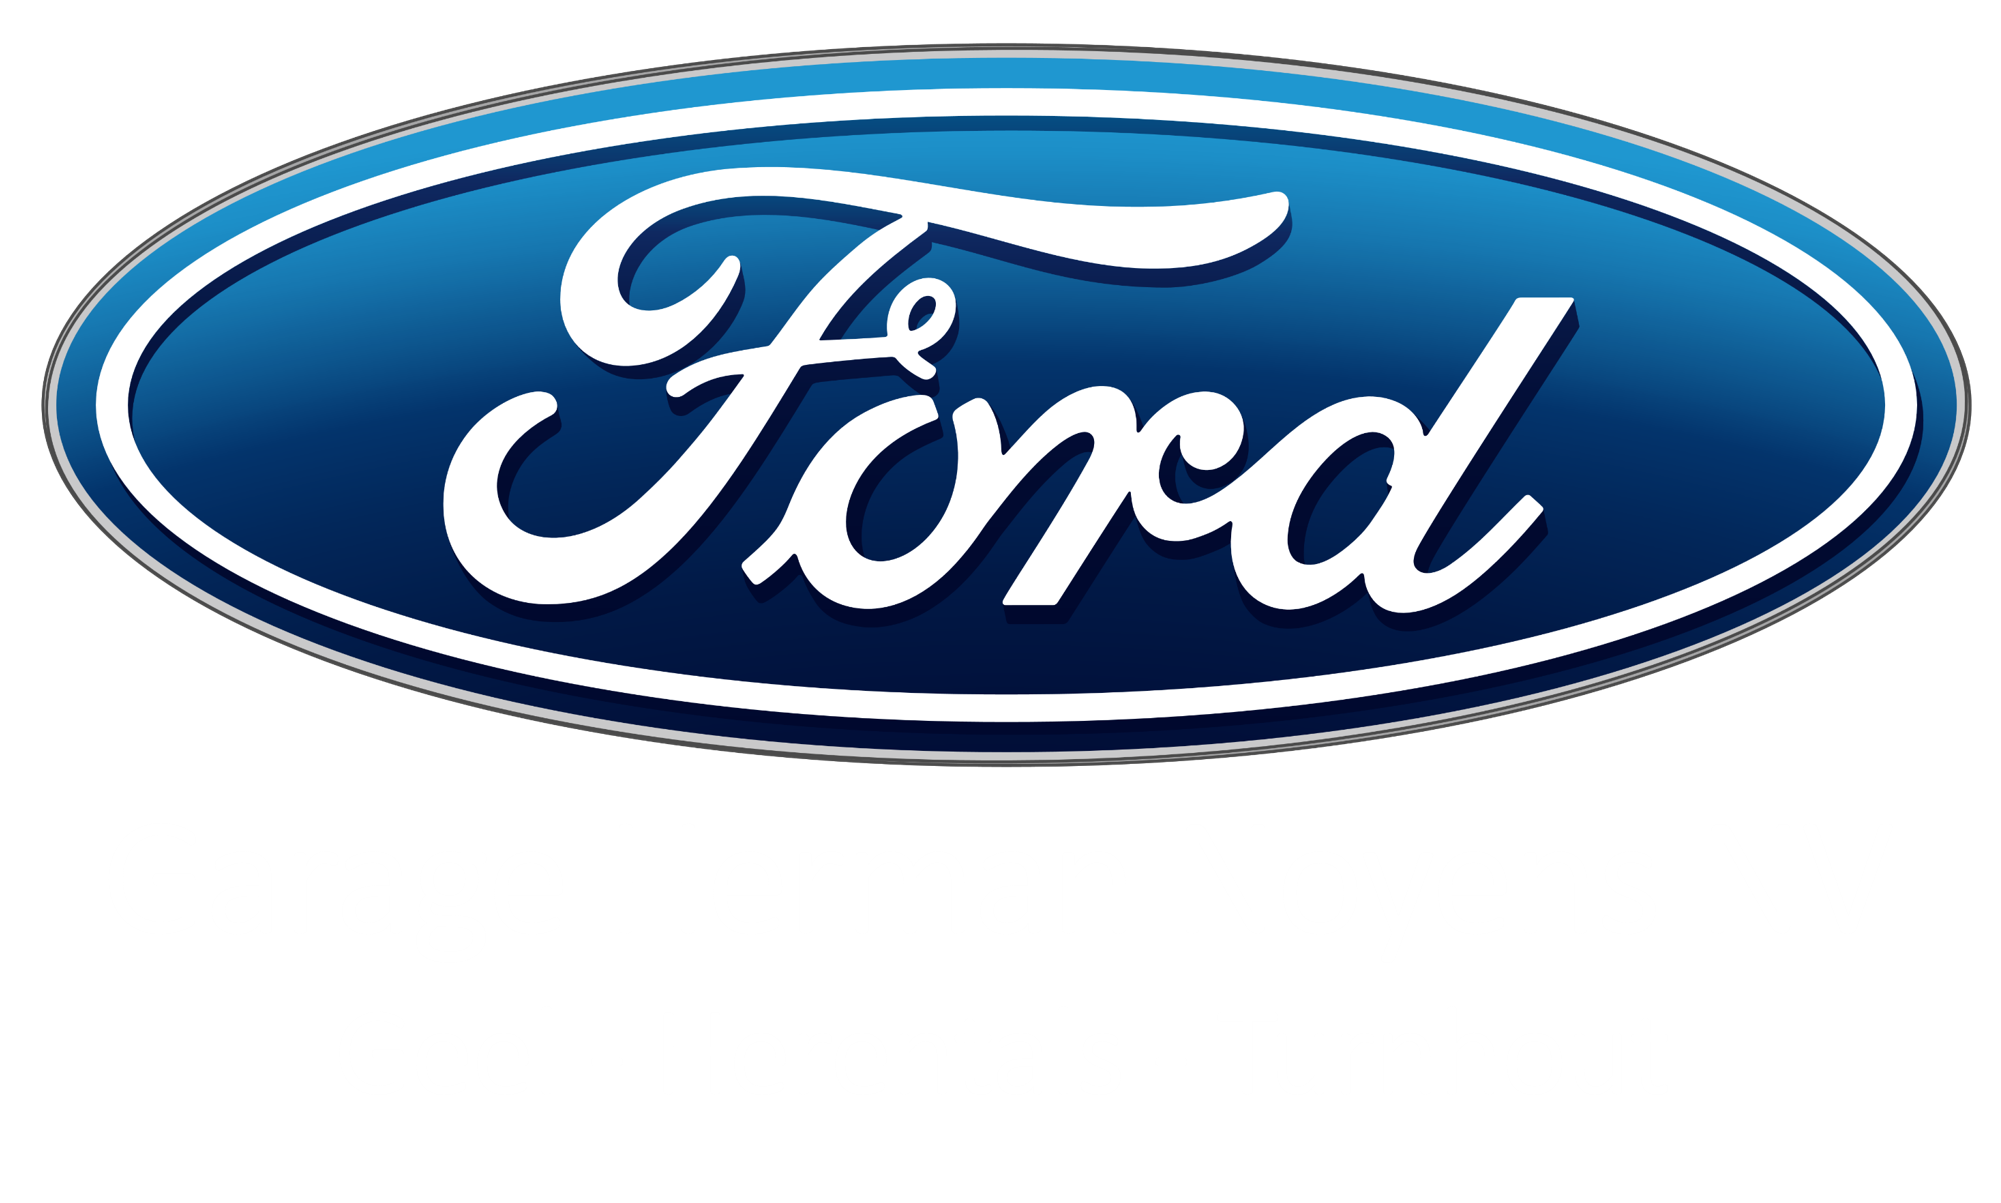 Ford Garage Herman Noyens NV